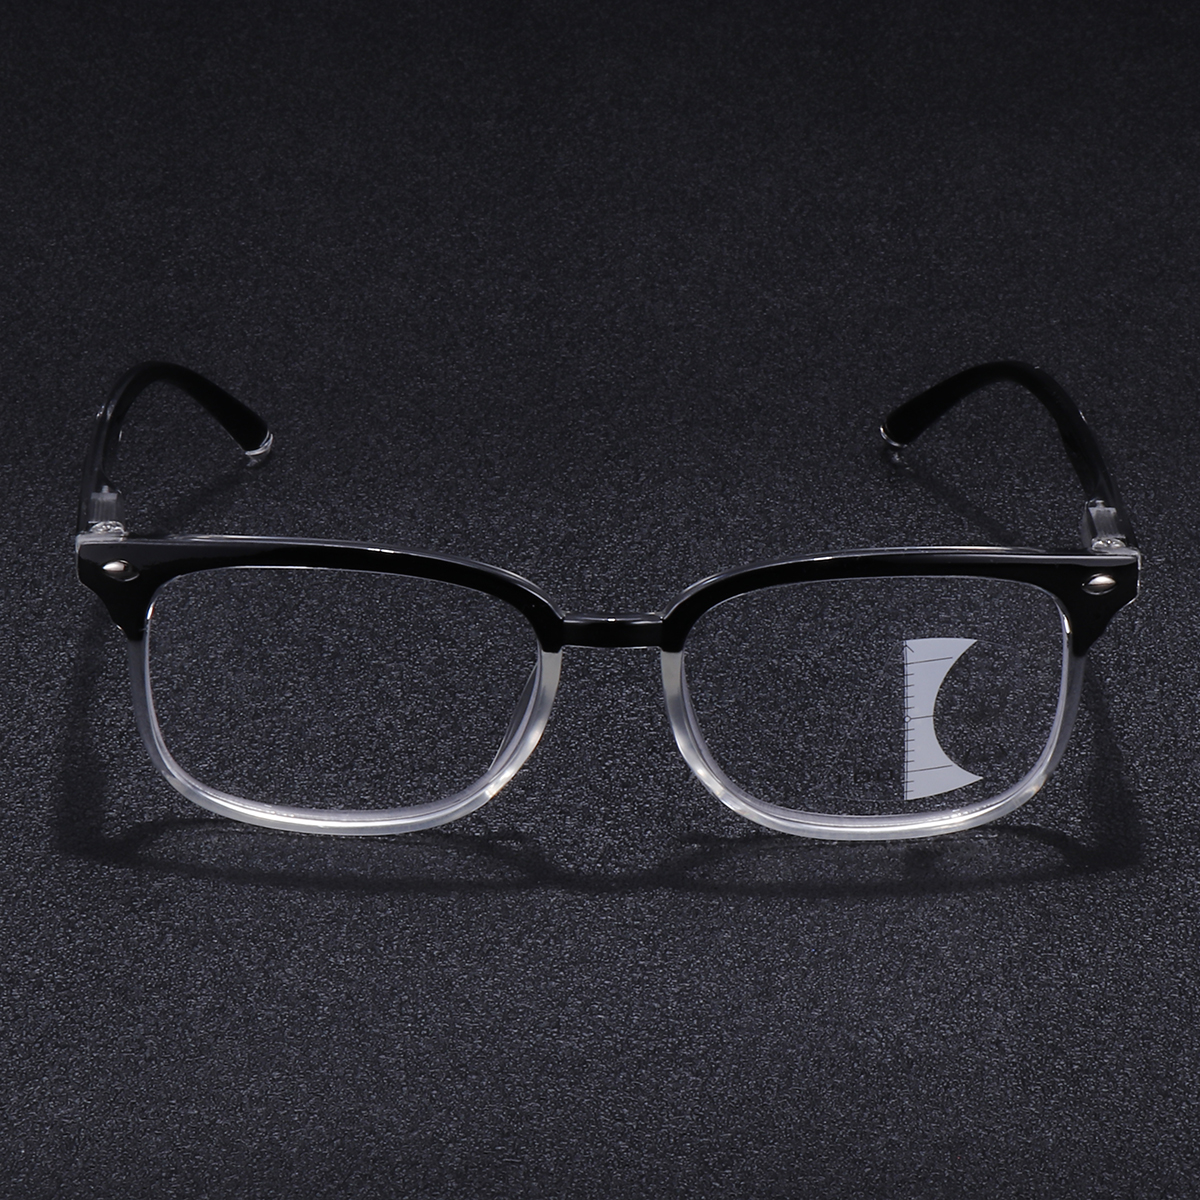 Progressive Multifocal Presbyopia Intelligent Reading Glasse